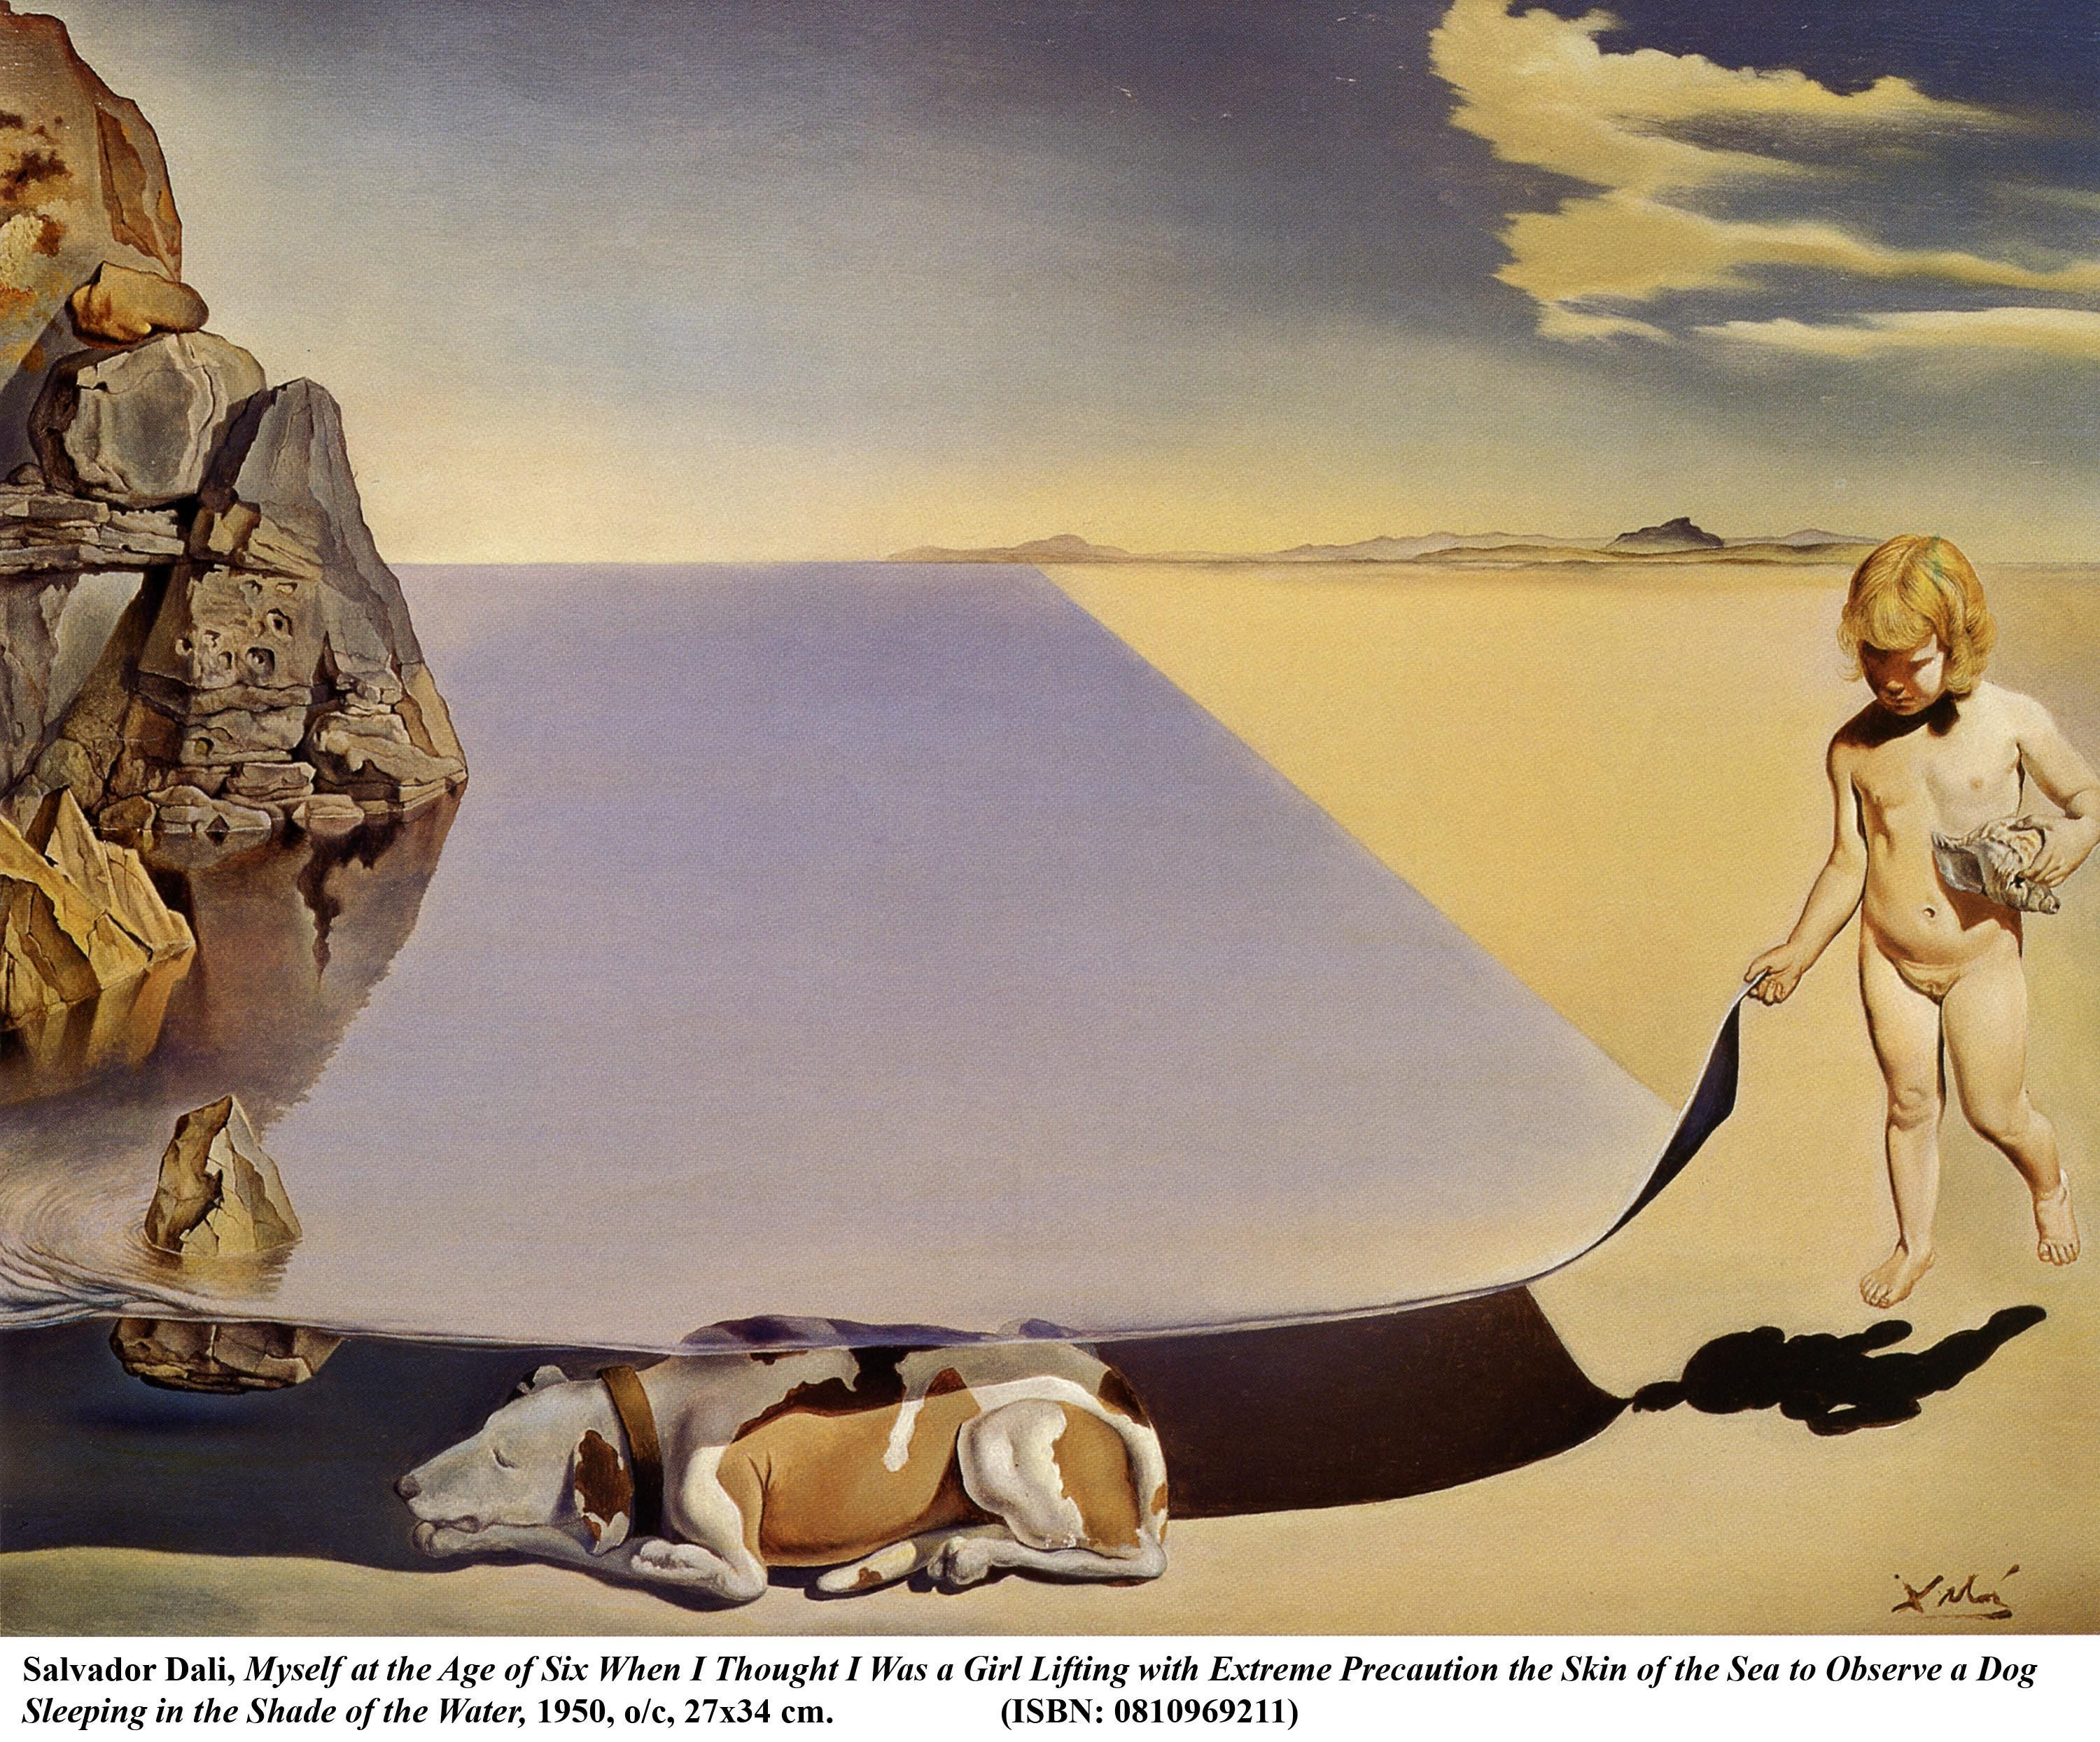 Risultati immagini per Dalí at the Age of Six, When He Thought He Was a Girl, Lifting the Skin of the Water to See a Dog Sleeping in the Shade of the Sea